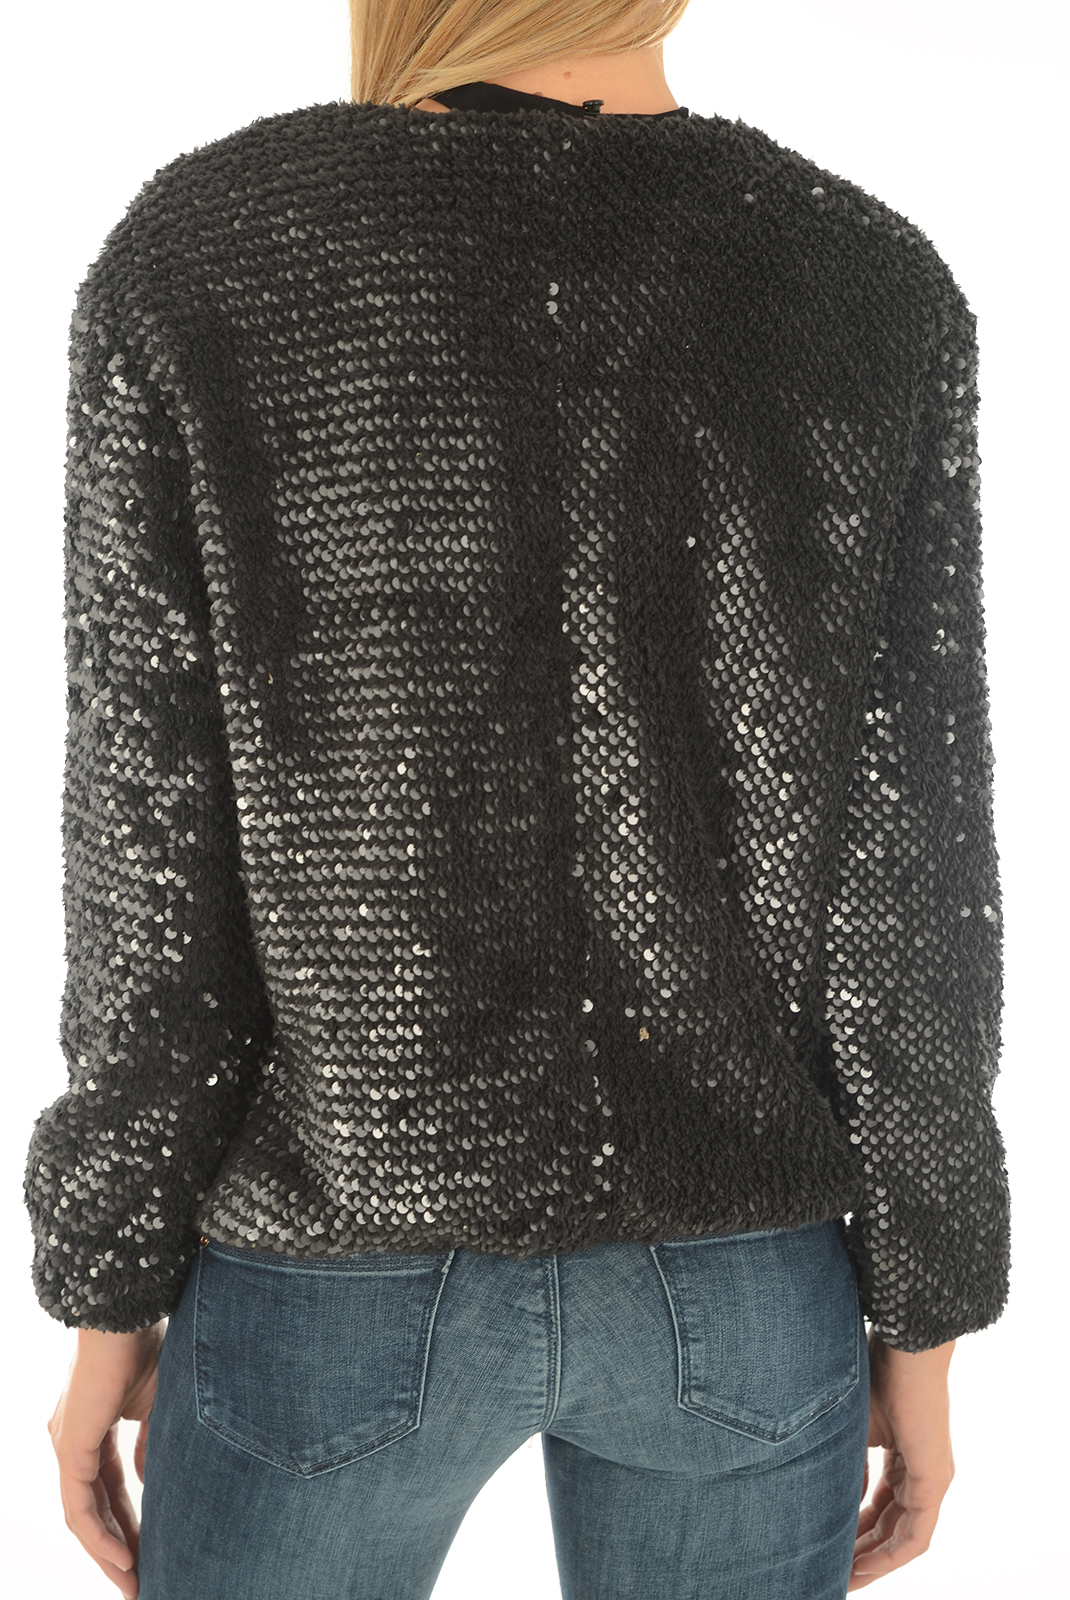 Blouson  Vero moda STARLIGHT SHORT JACKET BLACK